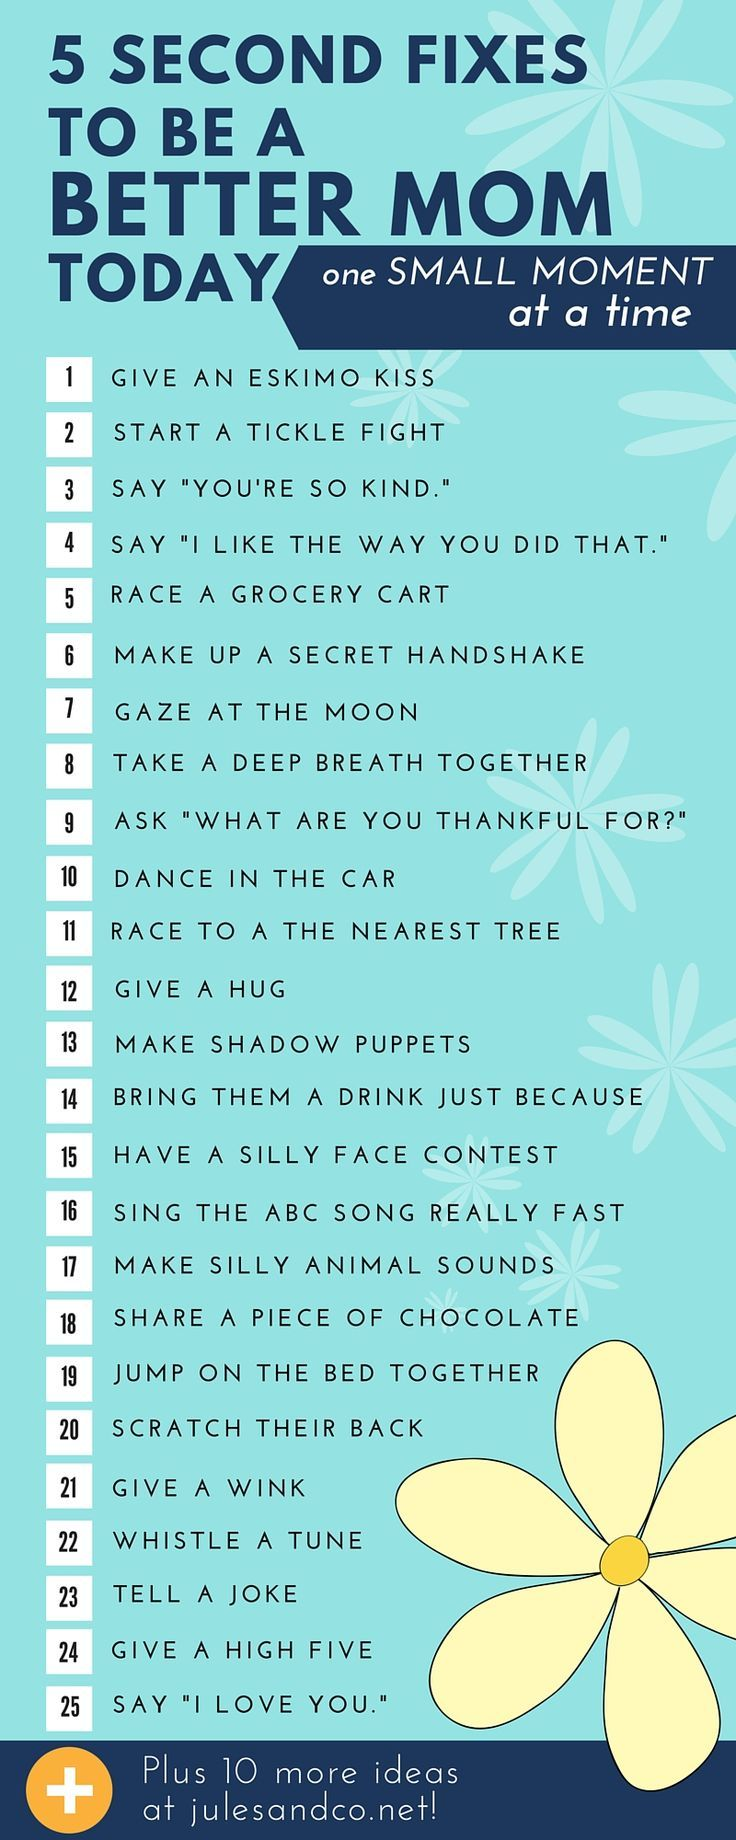 What do you do with a day that seems to go all wrong? Turn your day around with these quick tips to be a better mom in the small moments! Take 5 seconds to show your kids they are valued and loved in your home.